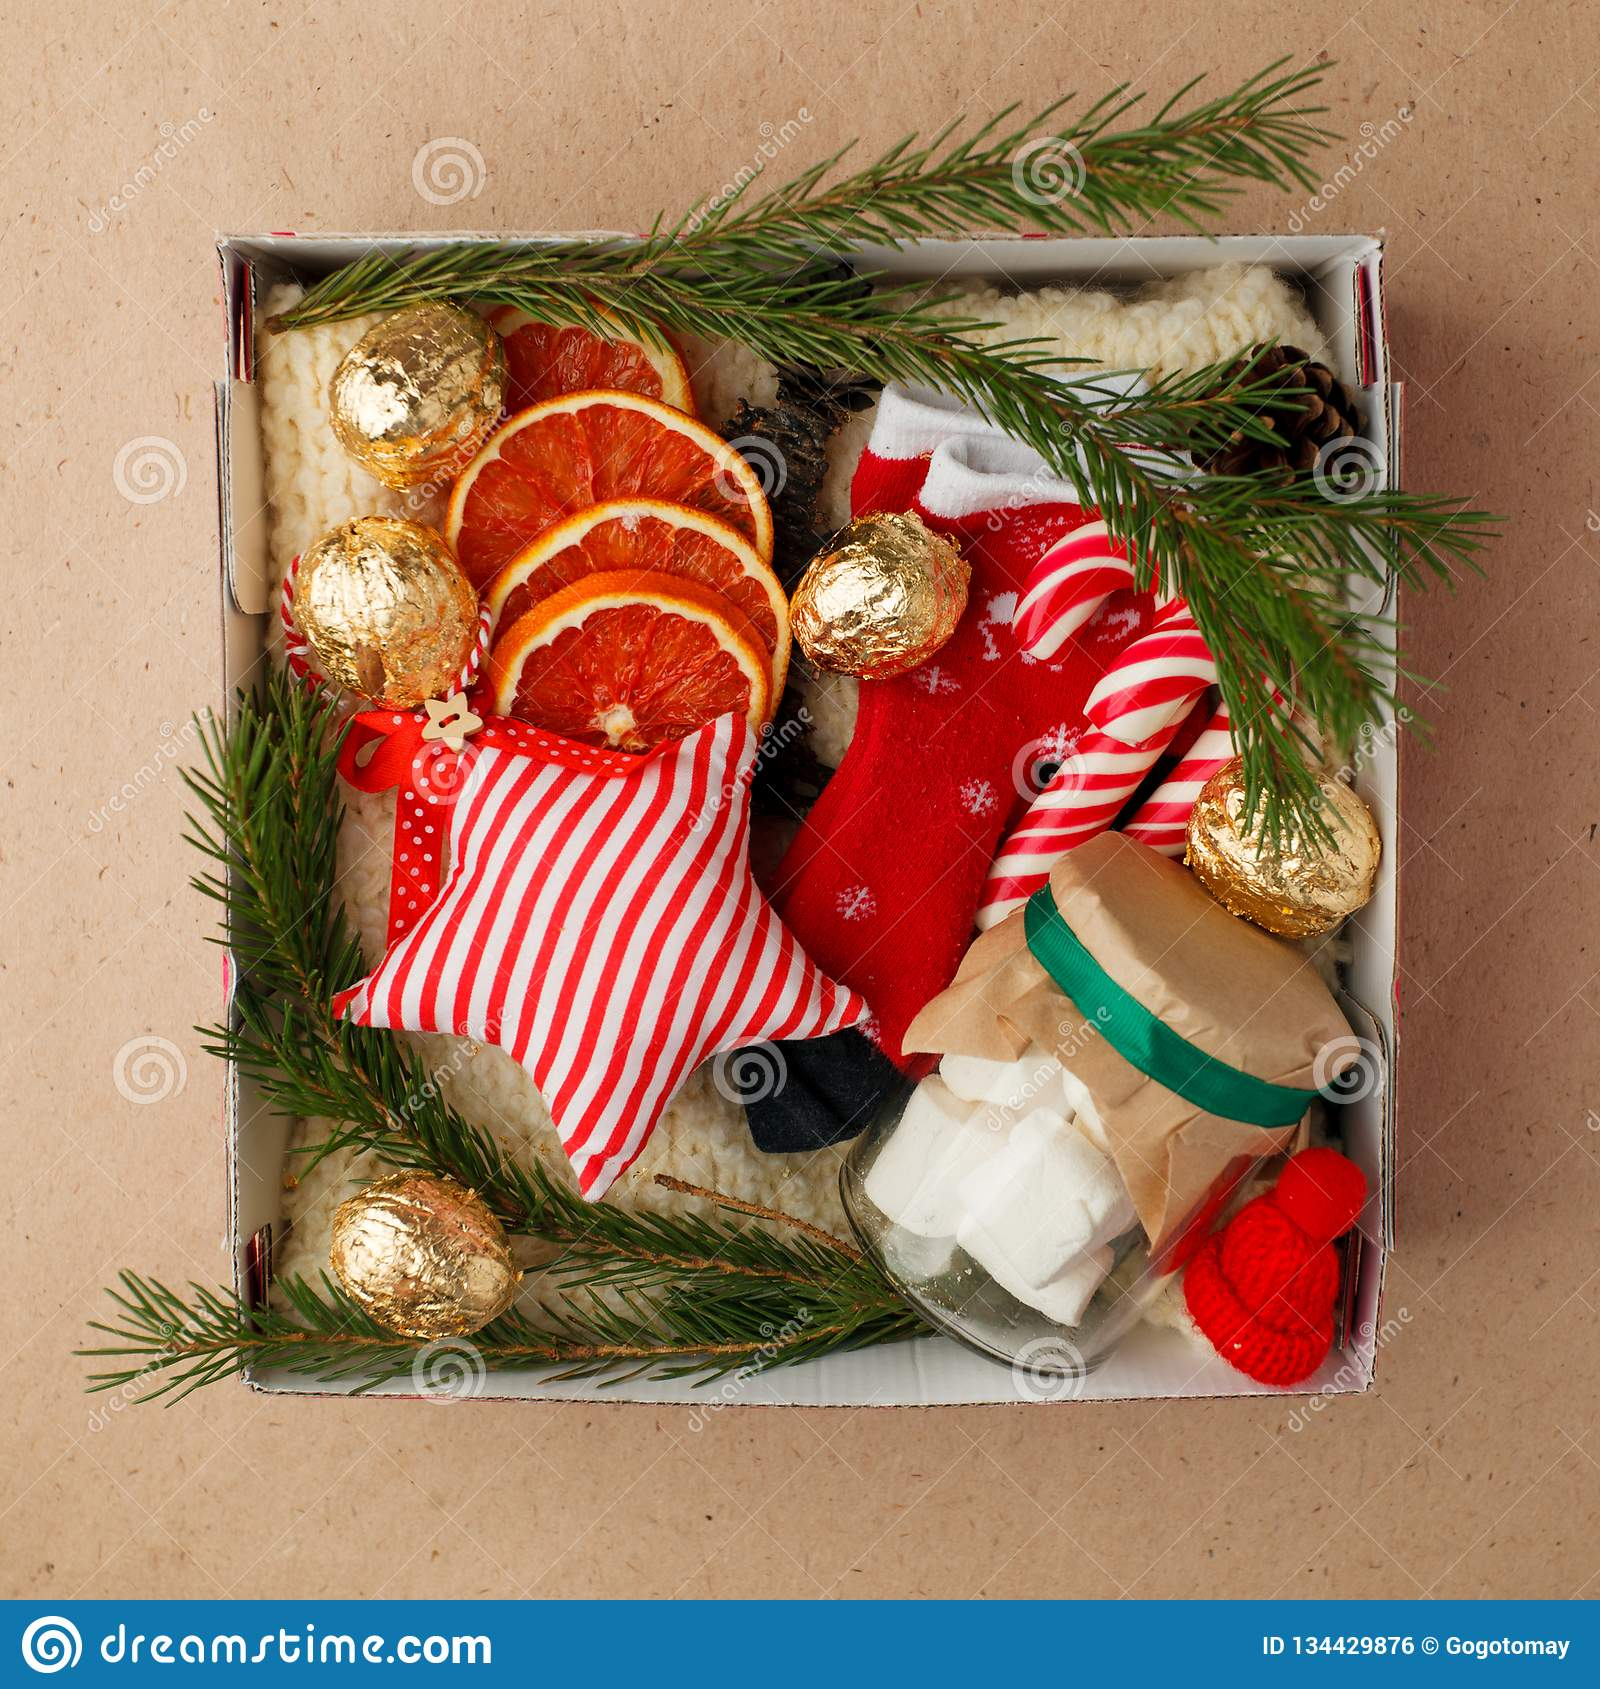 47e1cd873 A Personalized Box With Gifts For Christmas And New Year